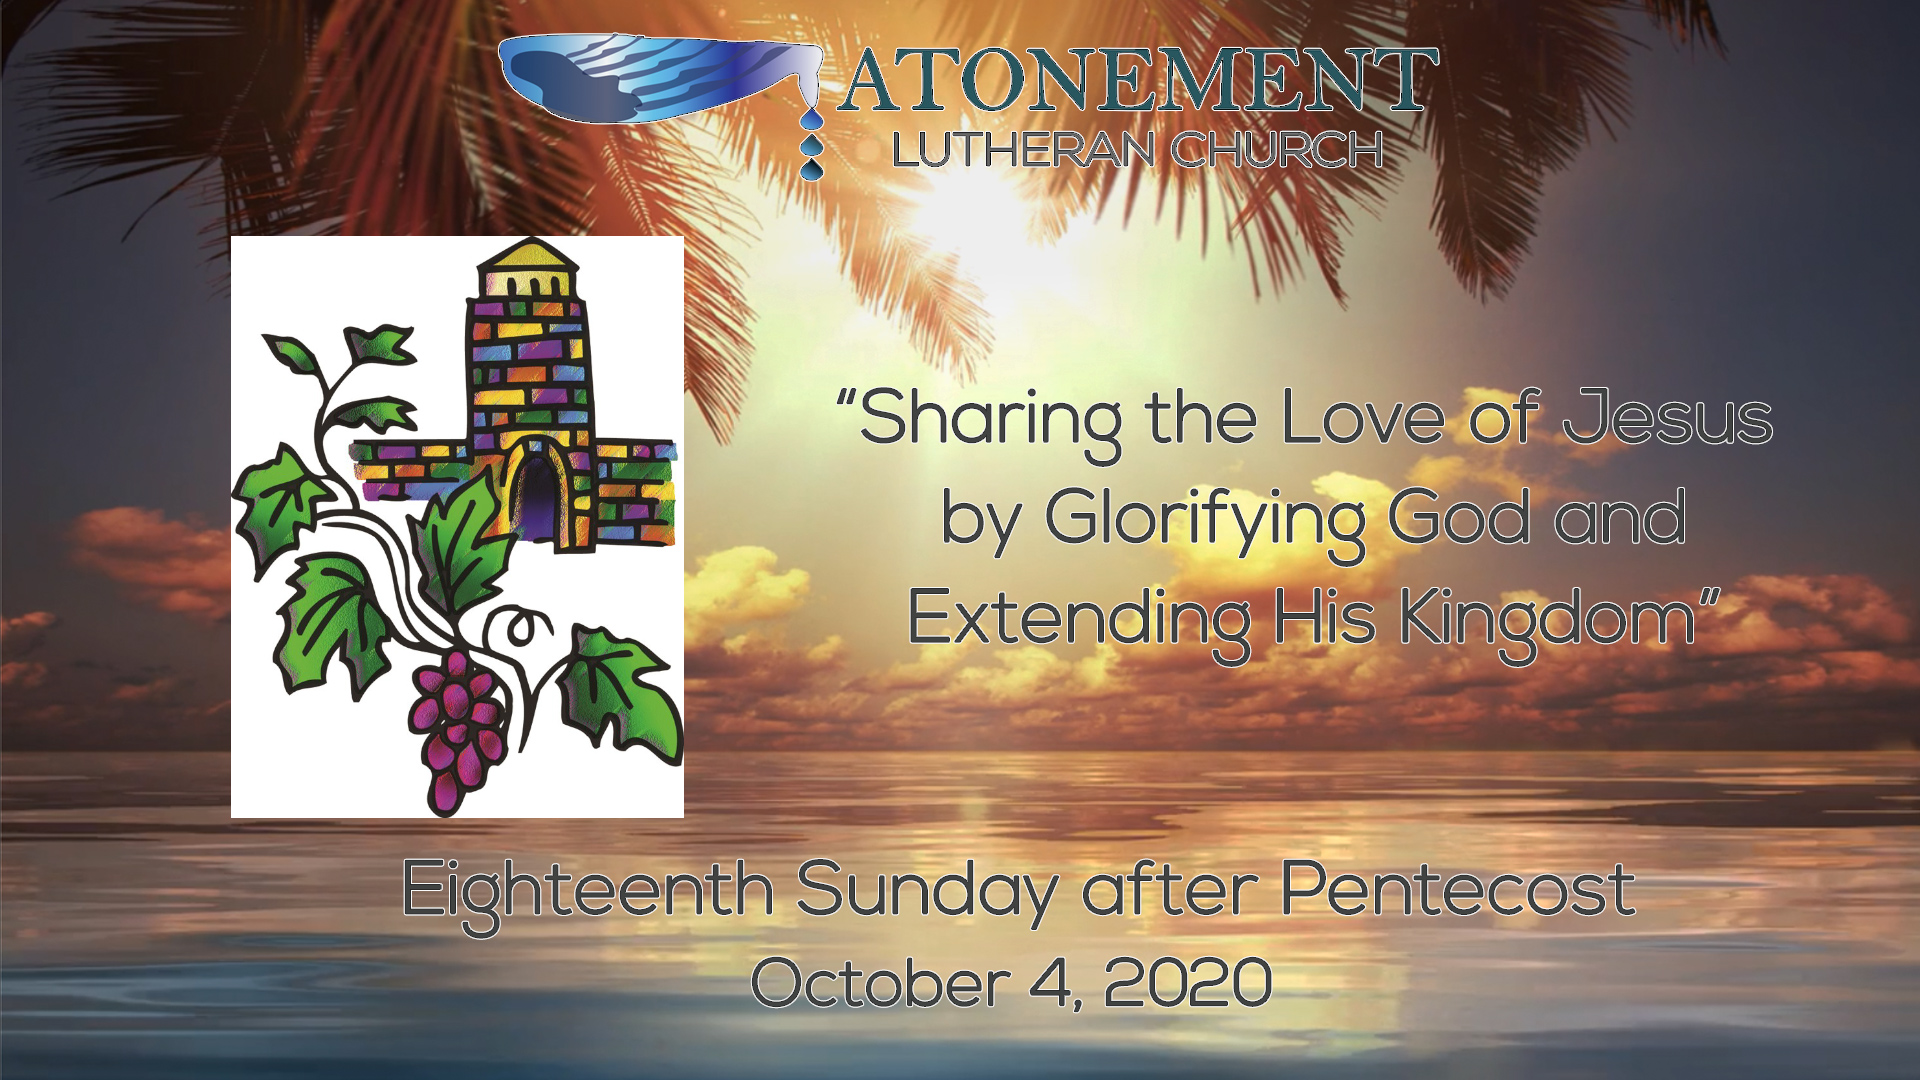 Oct. 4th, 2020, 18th Sunday after Pentecost